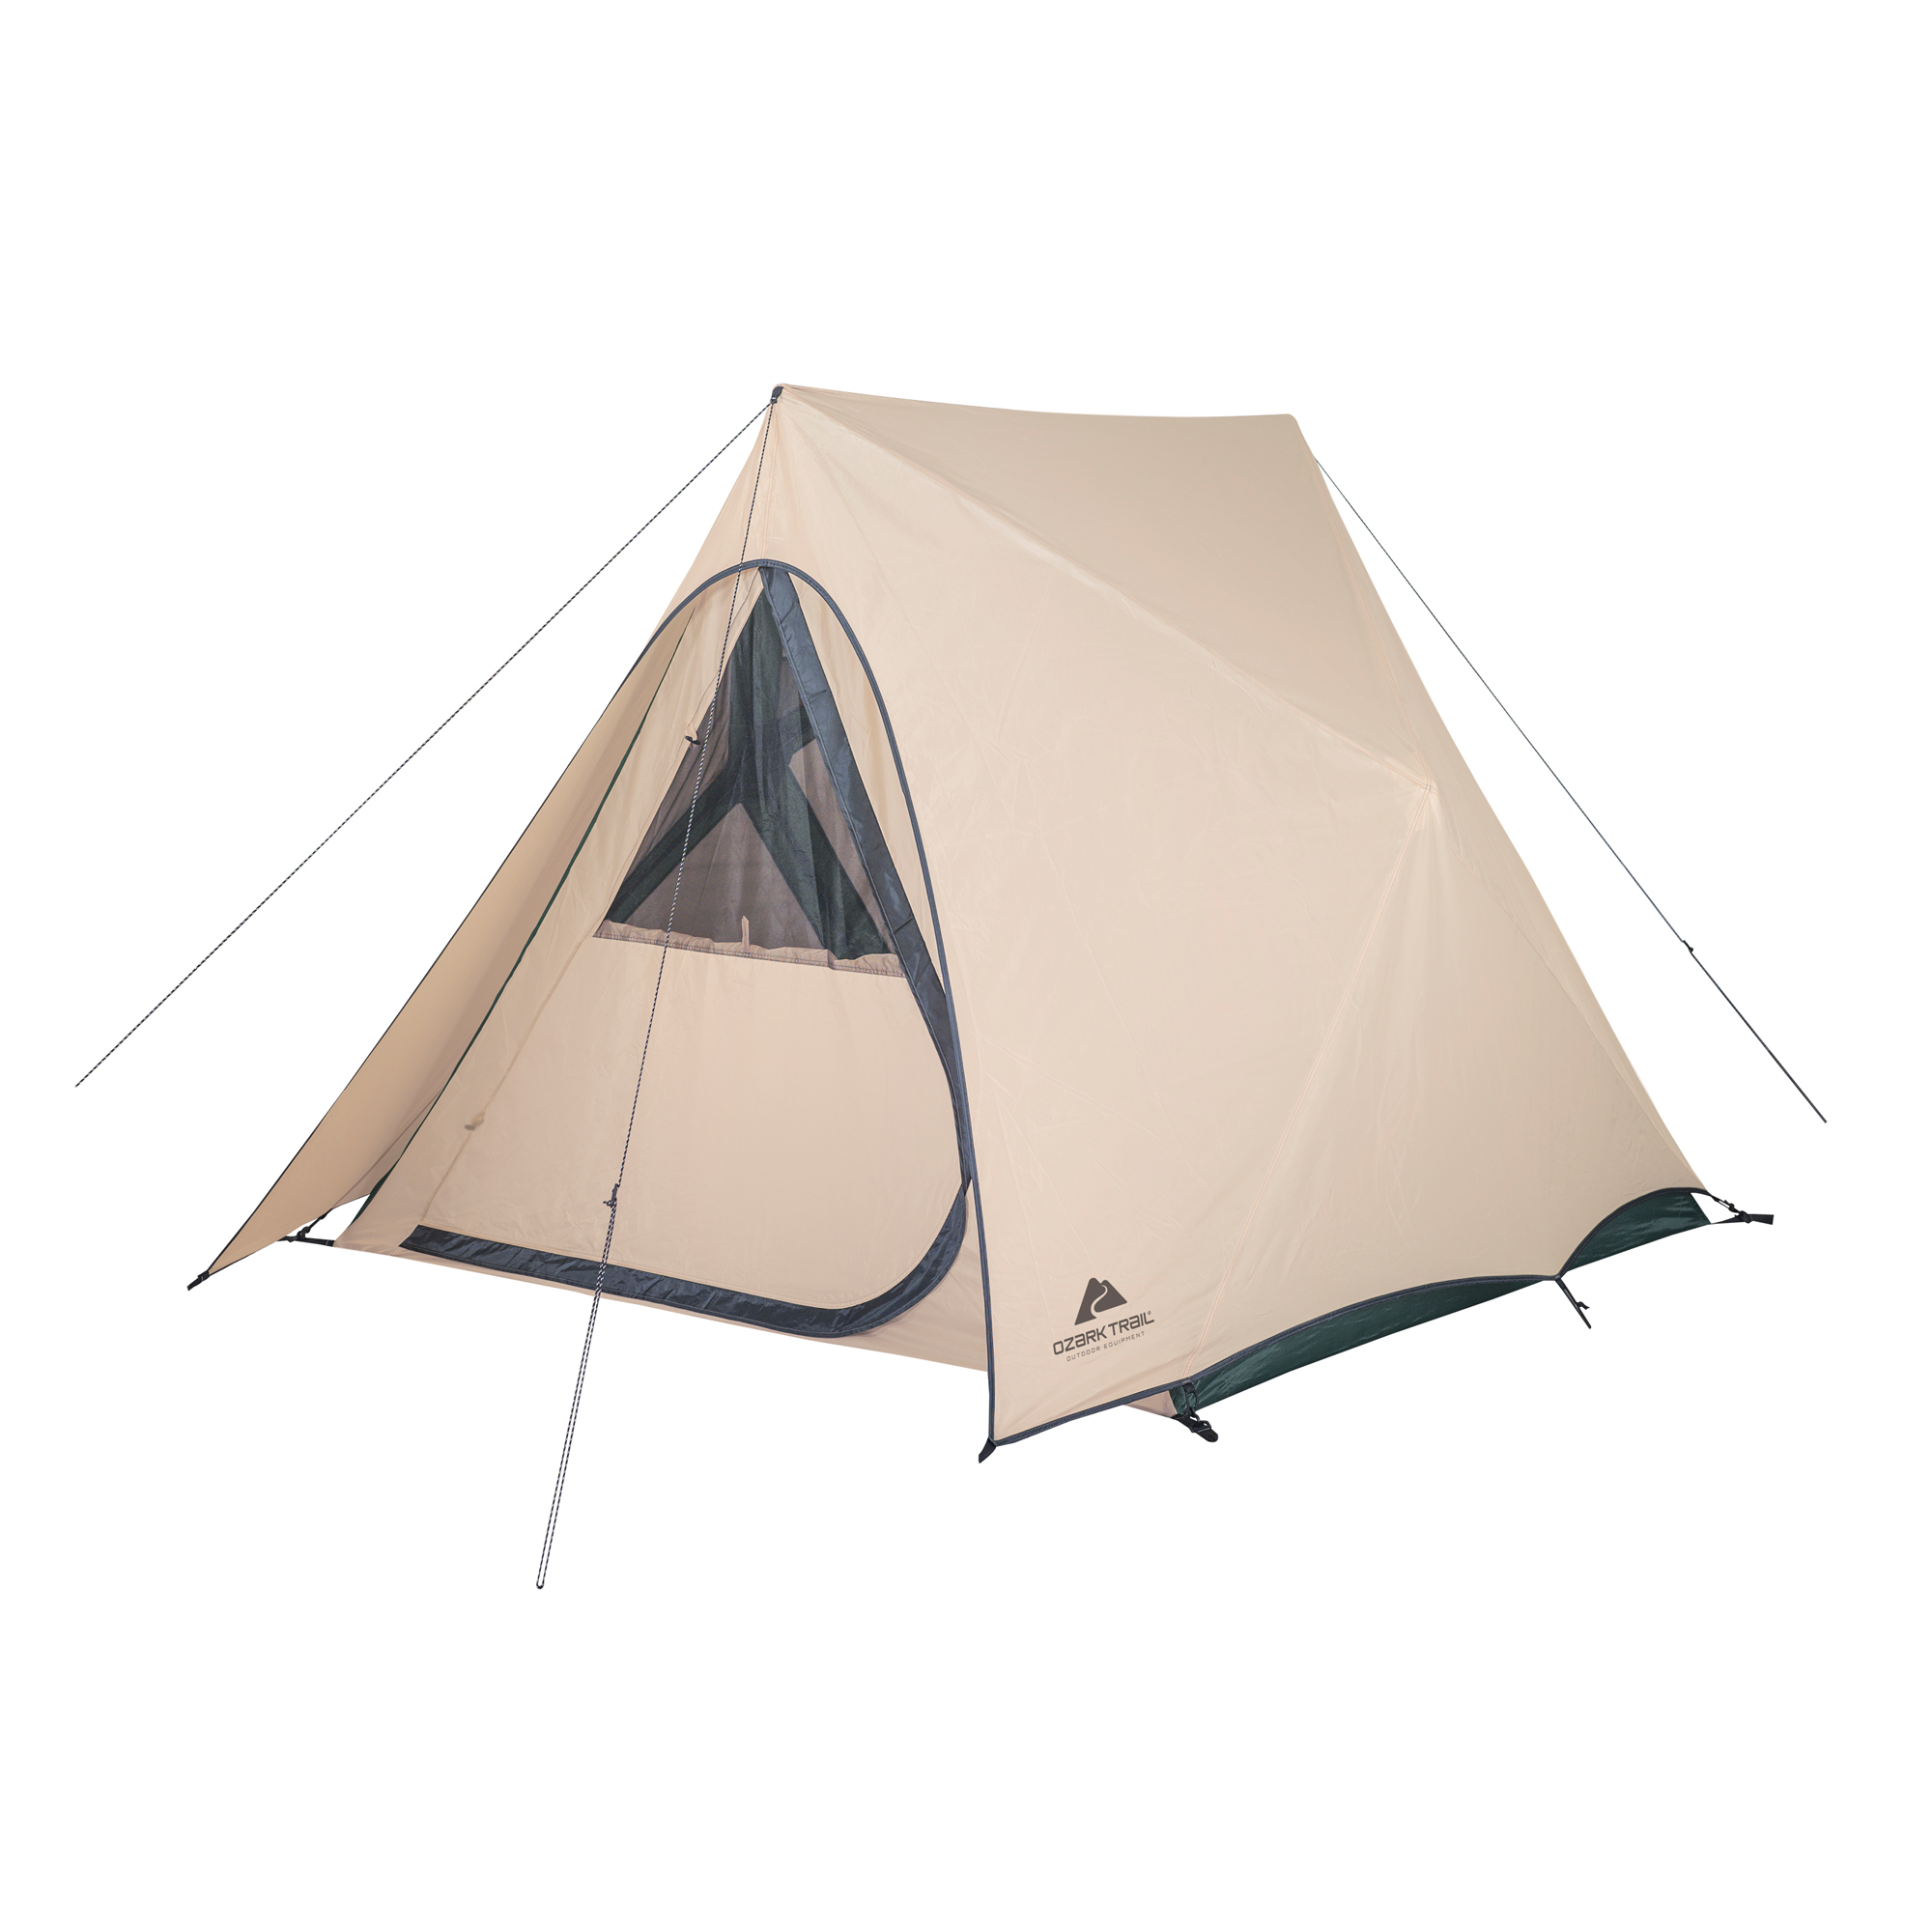 Ozark Trail 3-Person Pop-Out A-Frame Tent  sc 1 st  Walmart & Ozark Trail 3-Person Pop-Out A-Frame Tent - Walmart.com